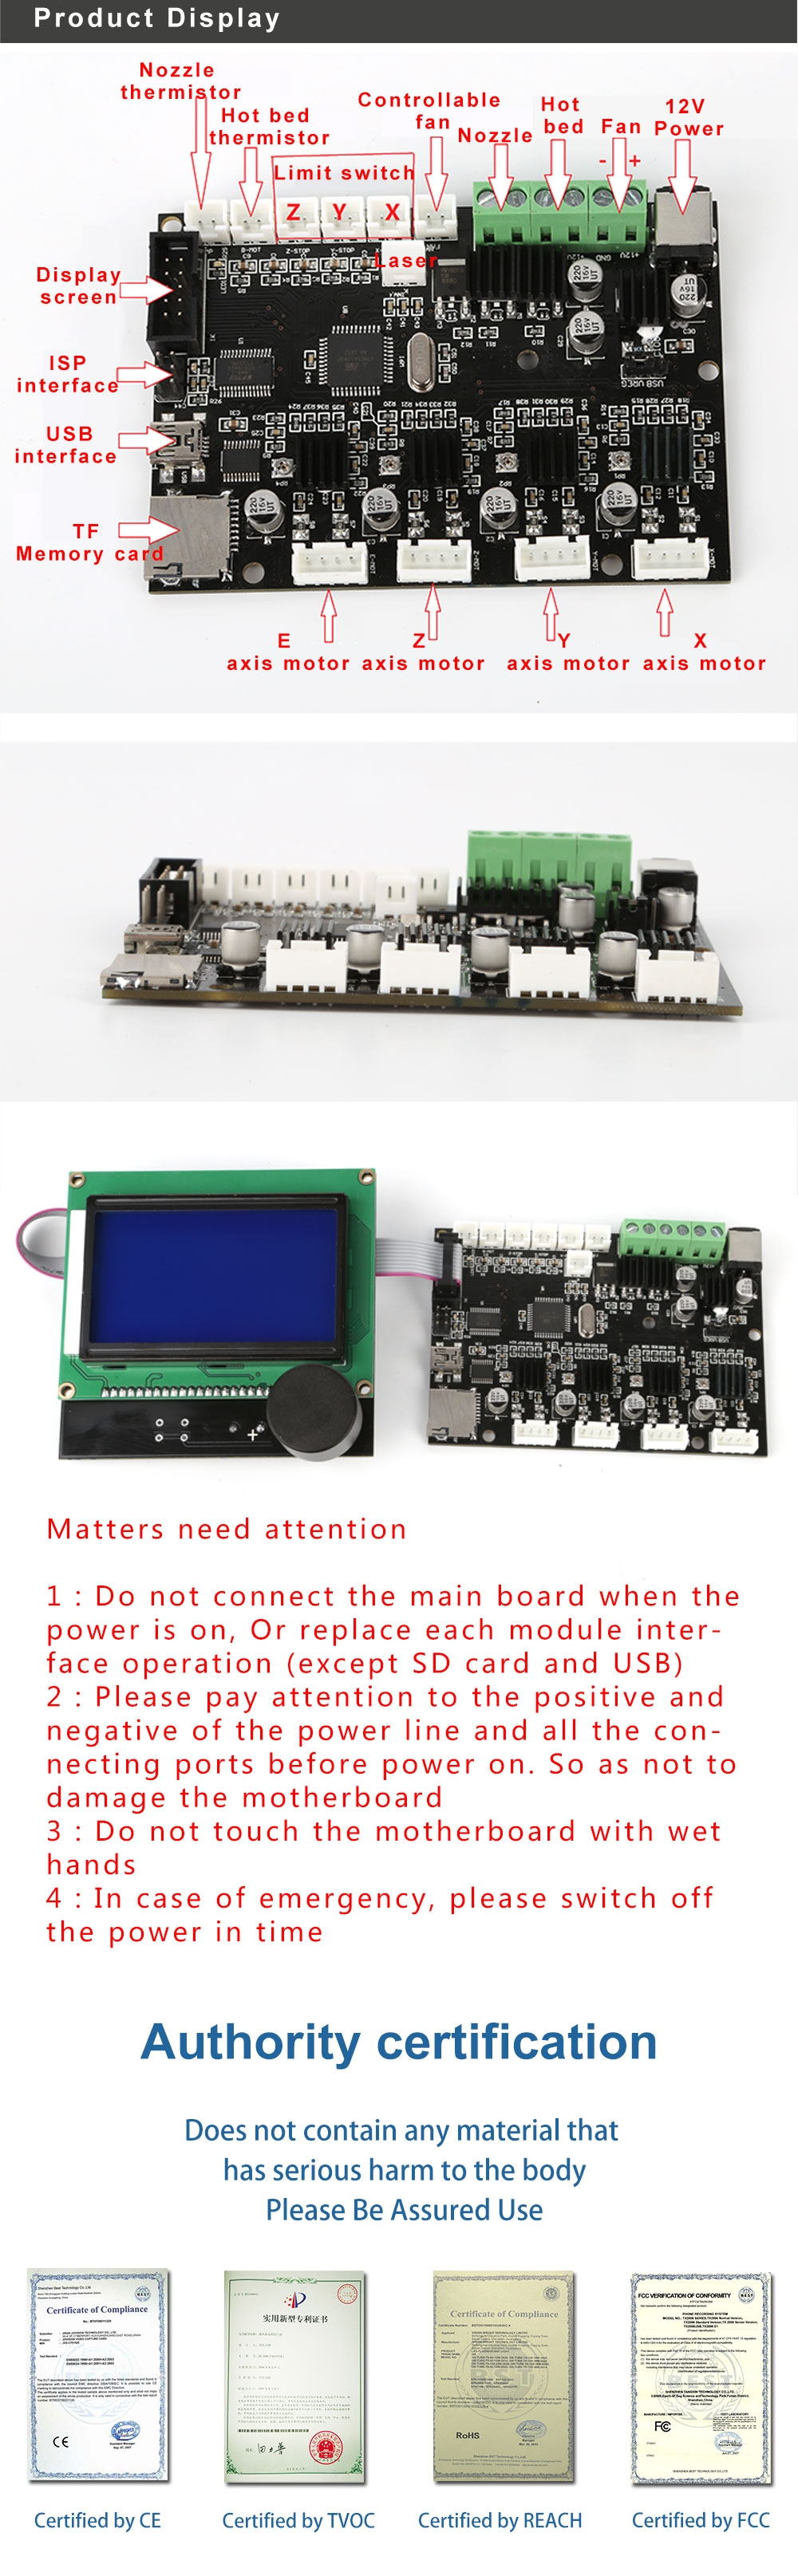 Creality 3D® CR-10 12V 3D Printer Mainboard Control Panel With USB Port & Power Chip